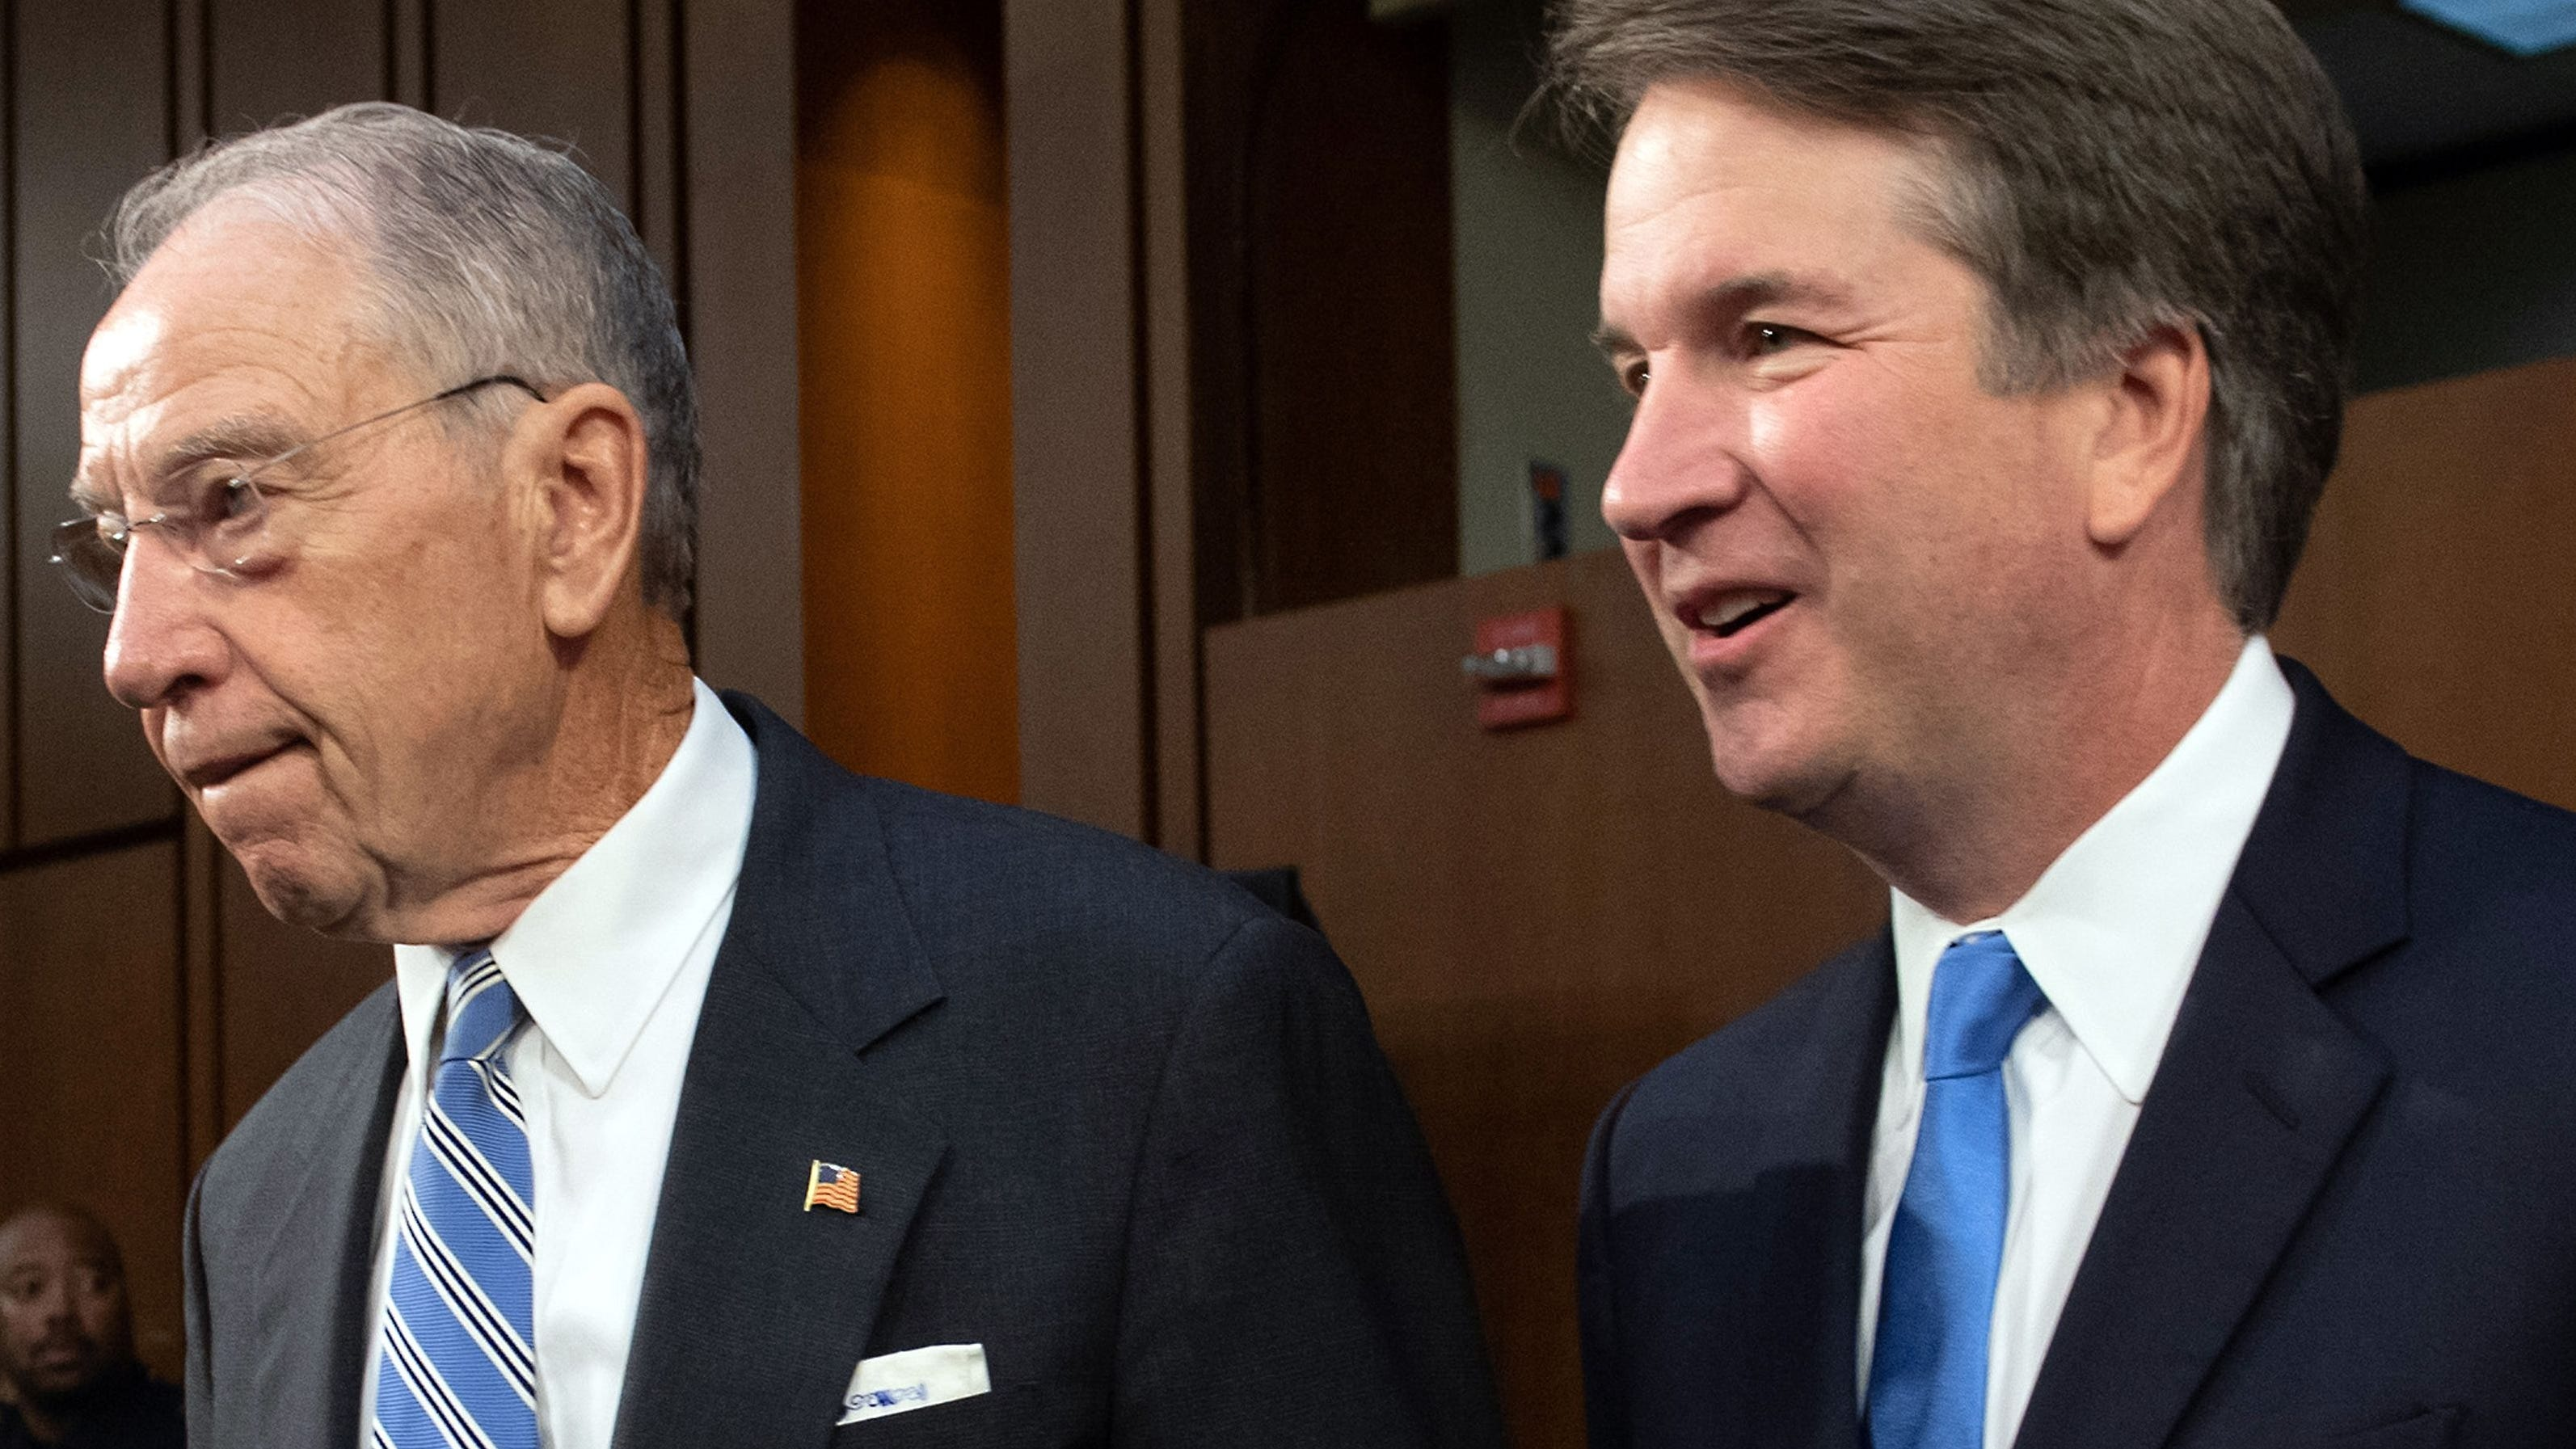 Supreme Court nominee Brett Kavanaugh (right) is pictured walking alongside Sen. Chuck Grassley.